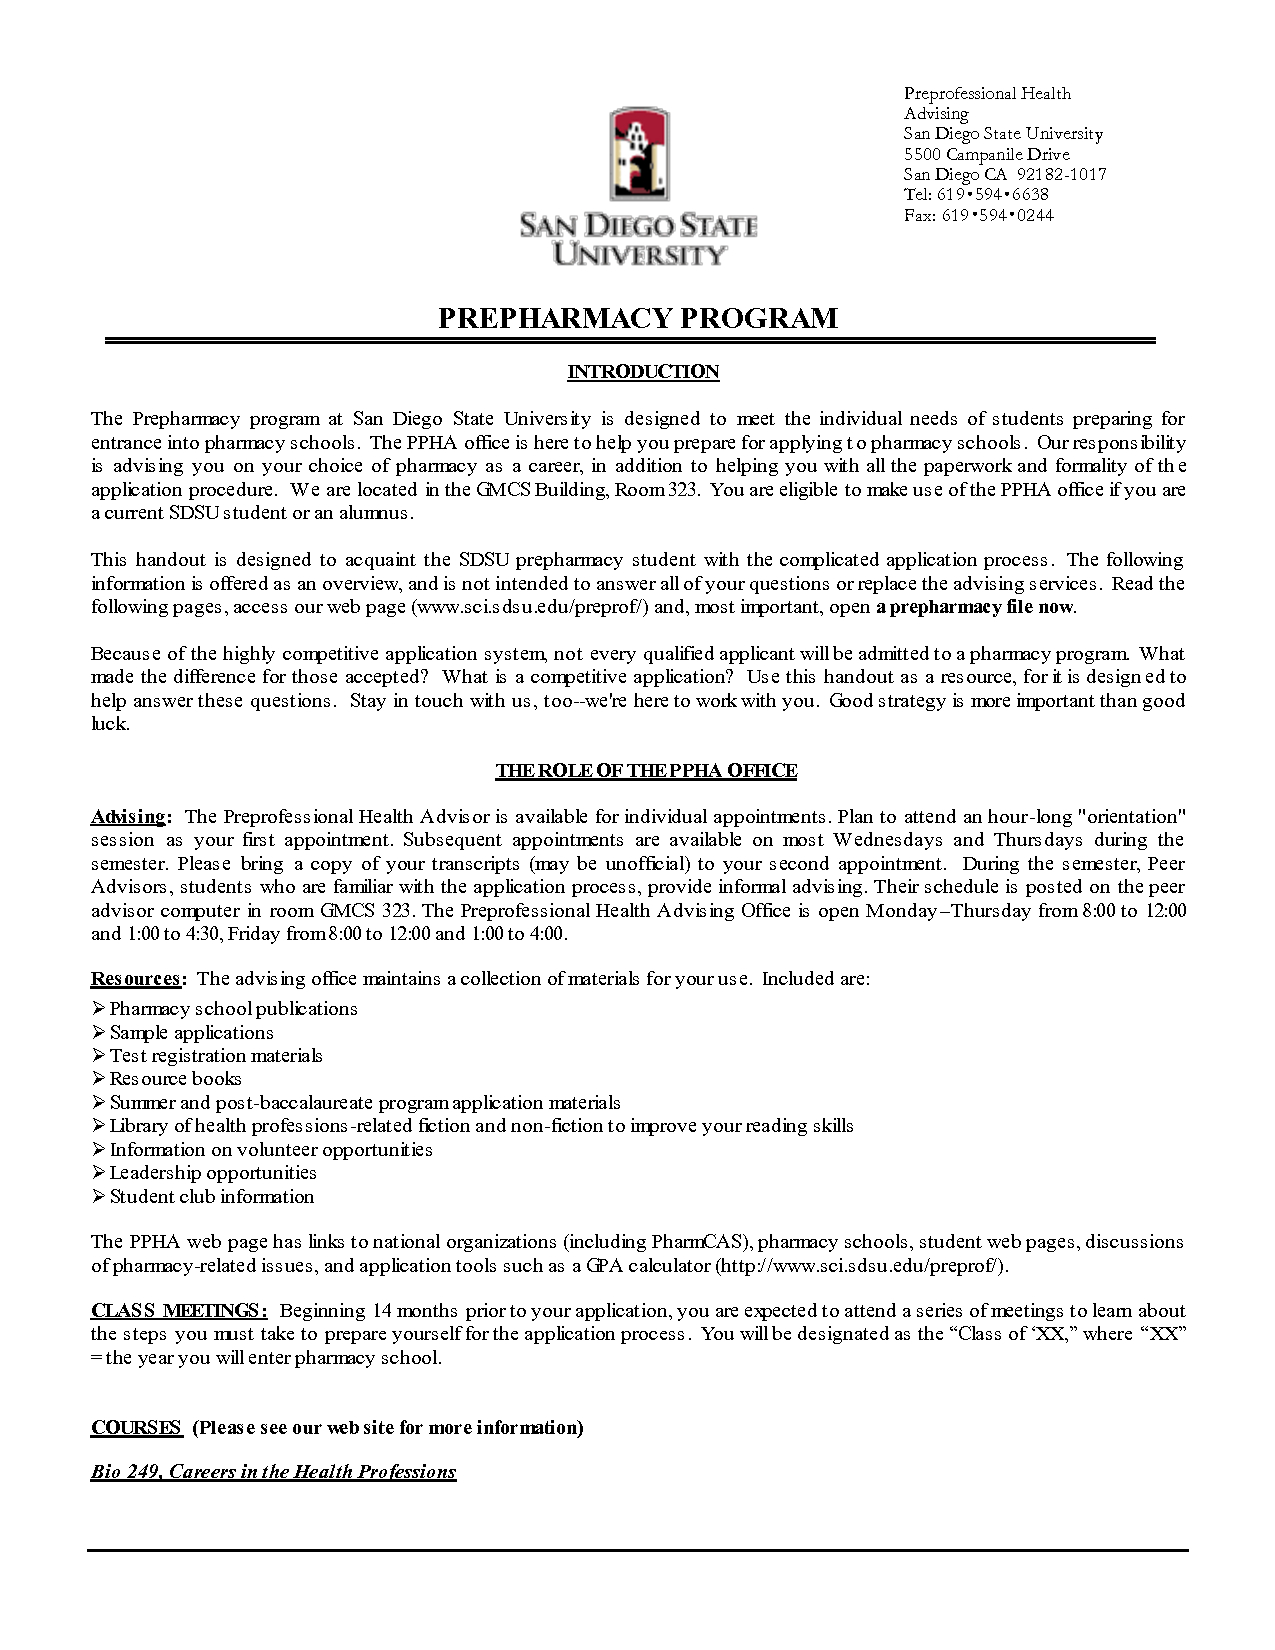 generic letter of recommendation template example-pharmacy school personal statement best template collection pharmacy school personal statement od1iqbfm 11-d